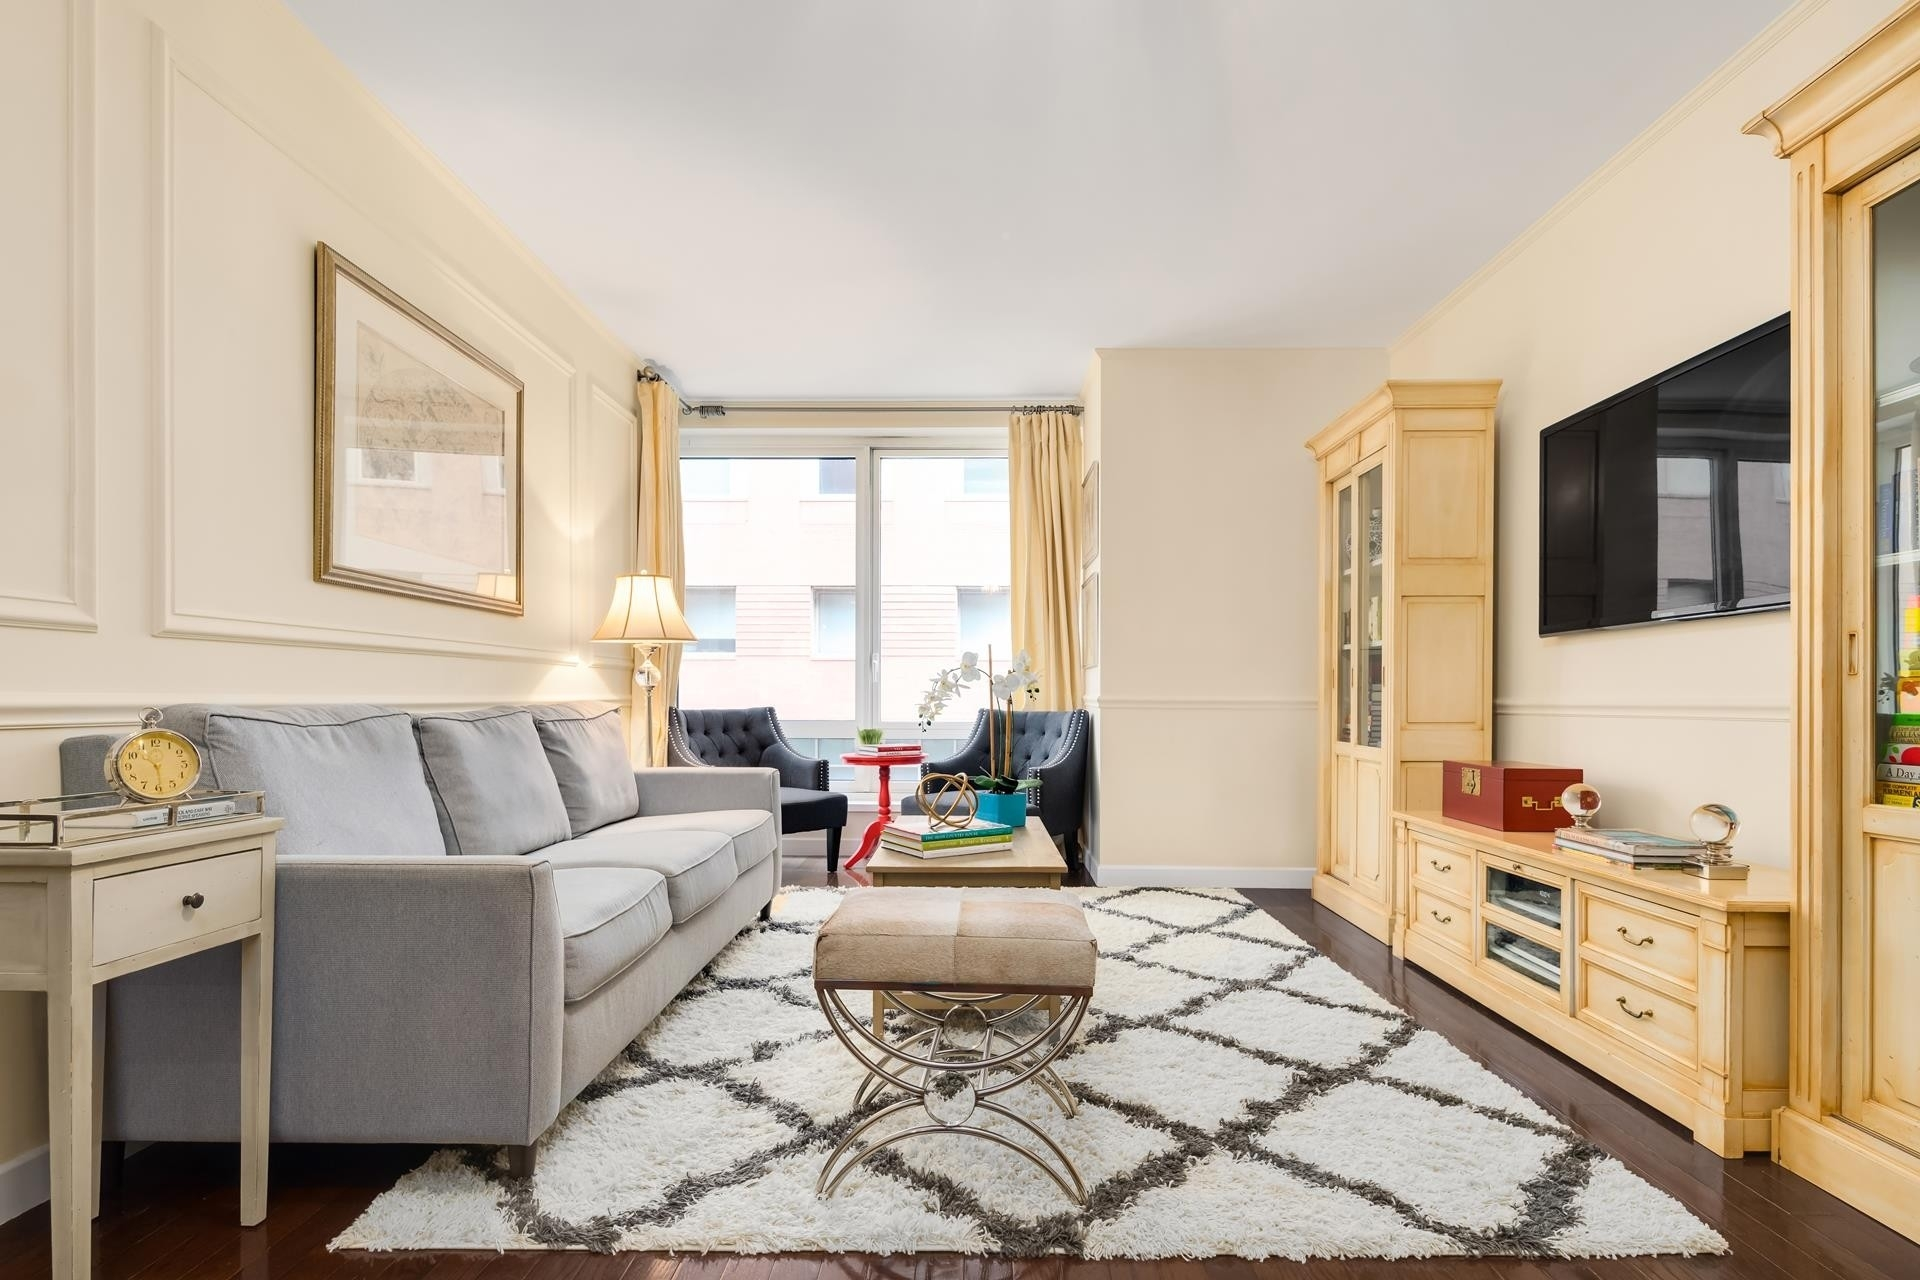 Property at Hudson Hill Condominium, 462 West 58th St, 5C New York